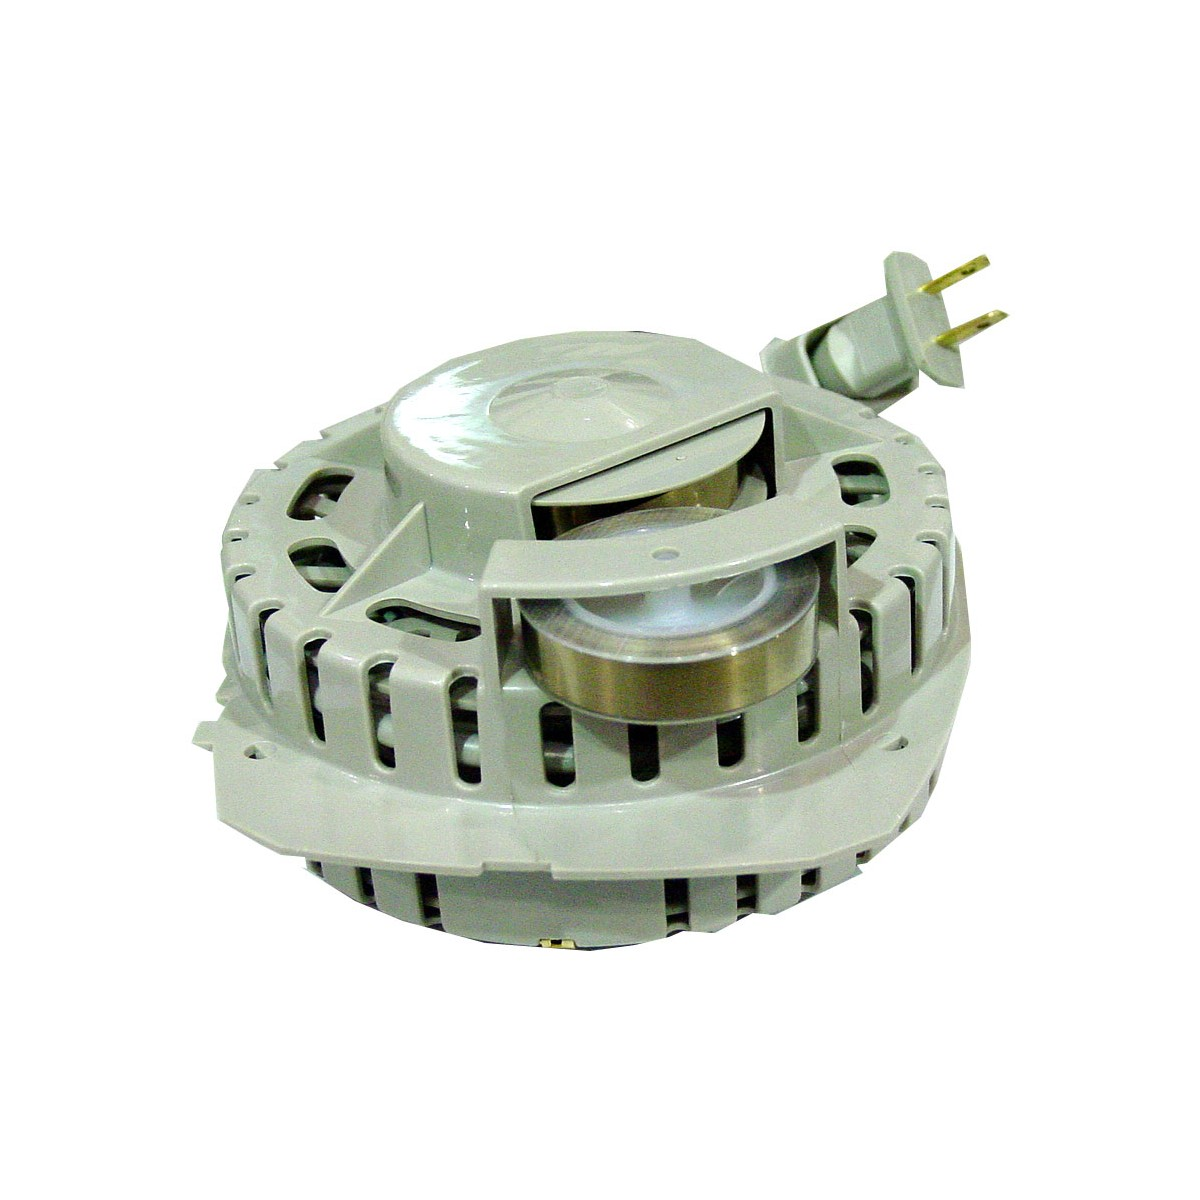 hight resolution of cord winder assembly for electrolux vacuum cleaner jpg